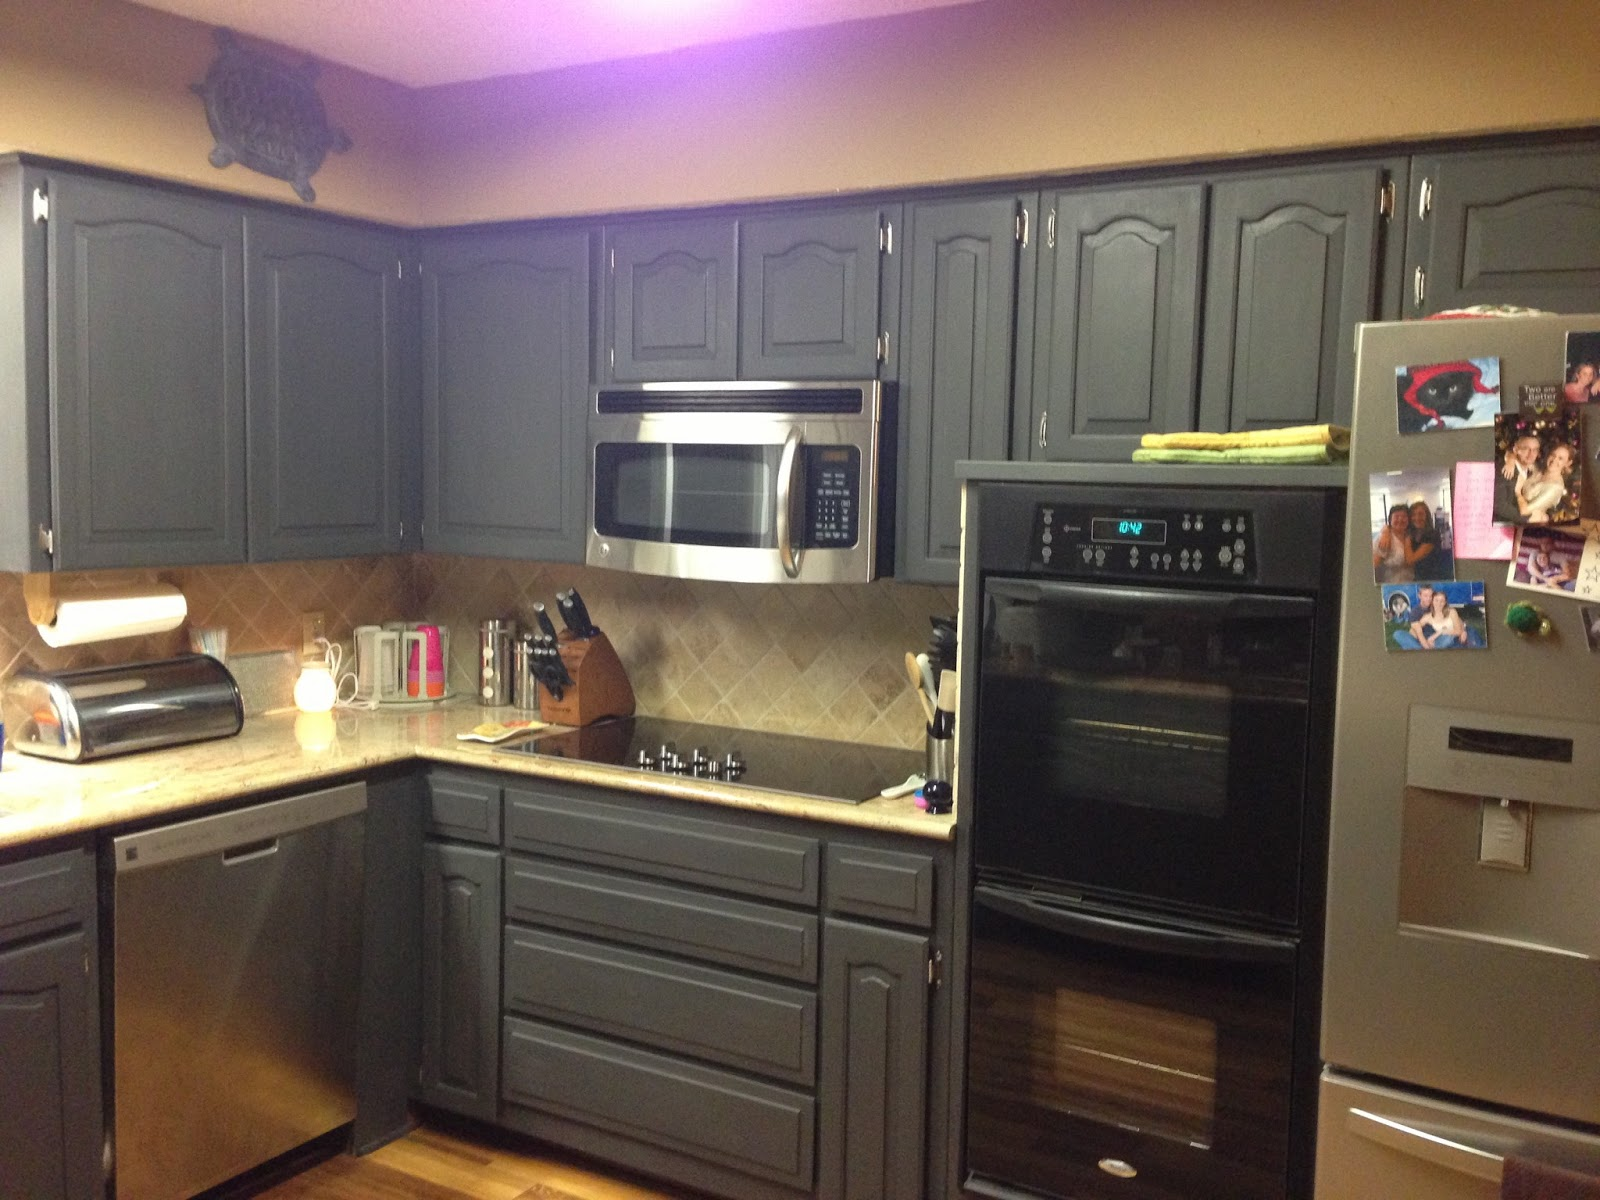 Wilker do 39 s using chalk paint to refinish kitchen cabinets - Painted kitchen cabinets ideas ...